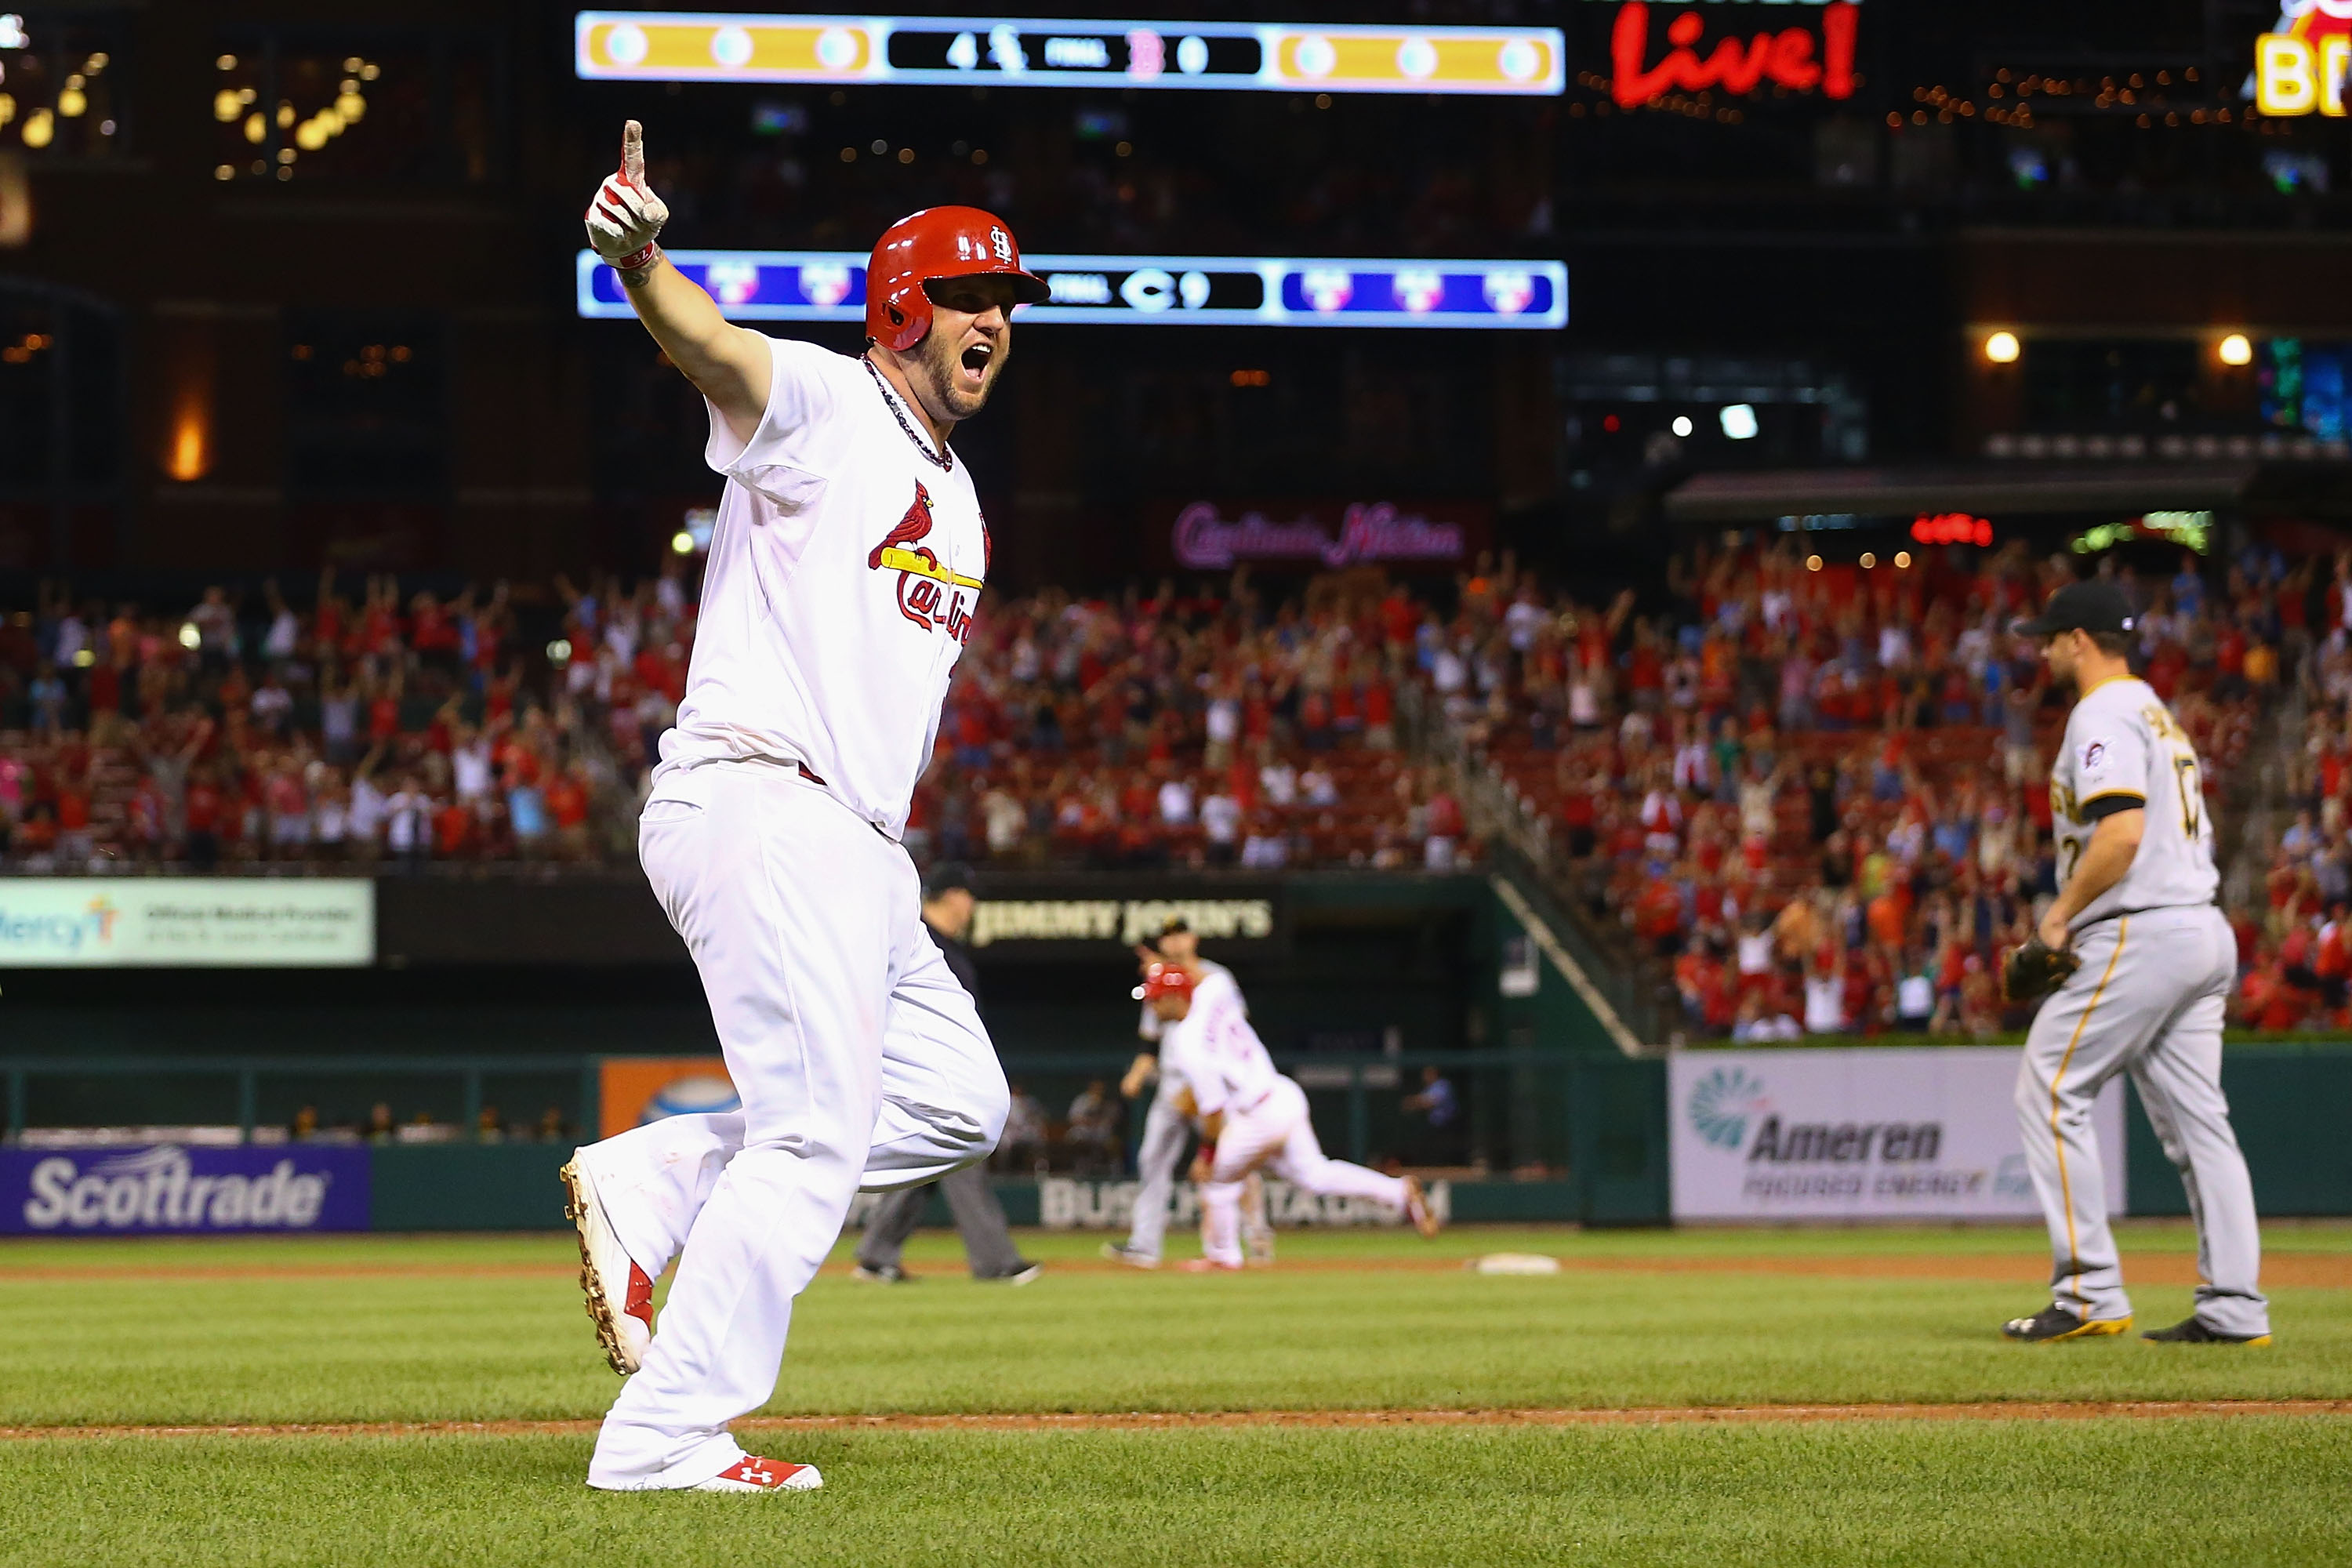 ST. LOUIS, MO - JULY 7: Matt Adams #32 of the St. Louis Cardinals celebrates after hitting a two-run walk-off home run against the Pittsburgh Pirates in the ninth inning at Busch Stadium on July 7, 2014 in St. Louis, Missouri.  The Cardinals beat the Pirates 2-0 with a walk-off home run.